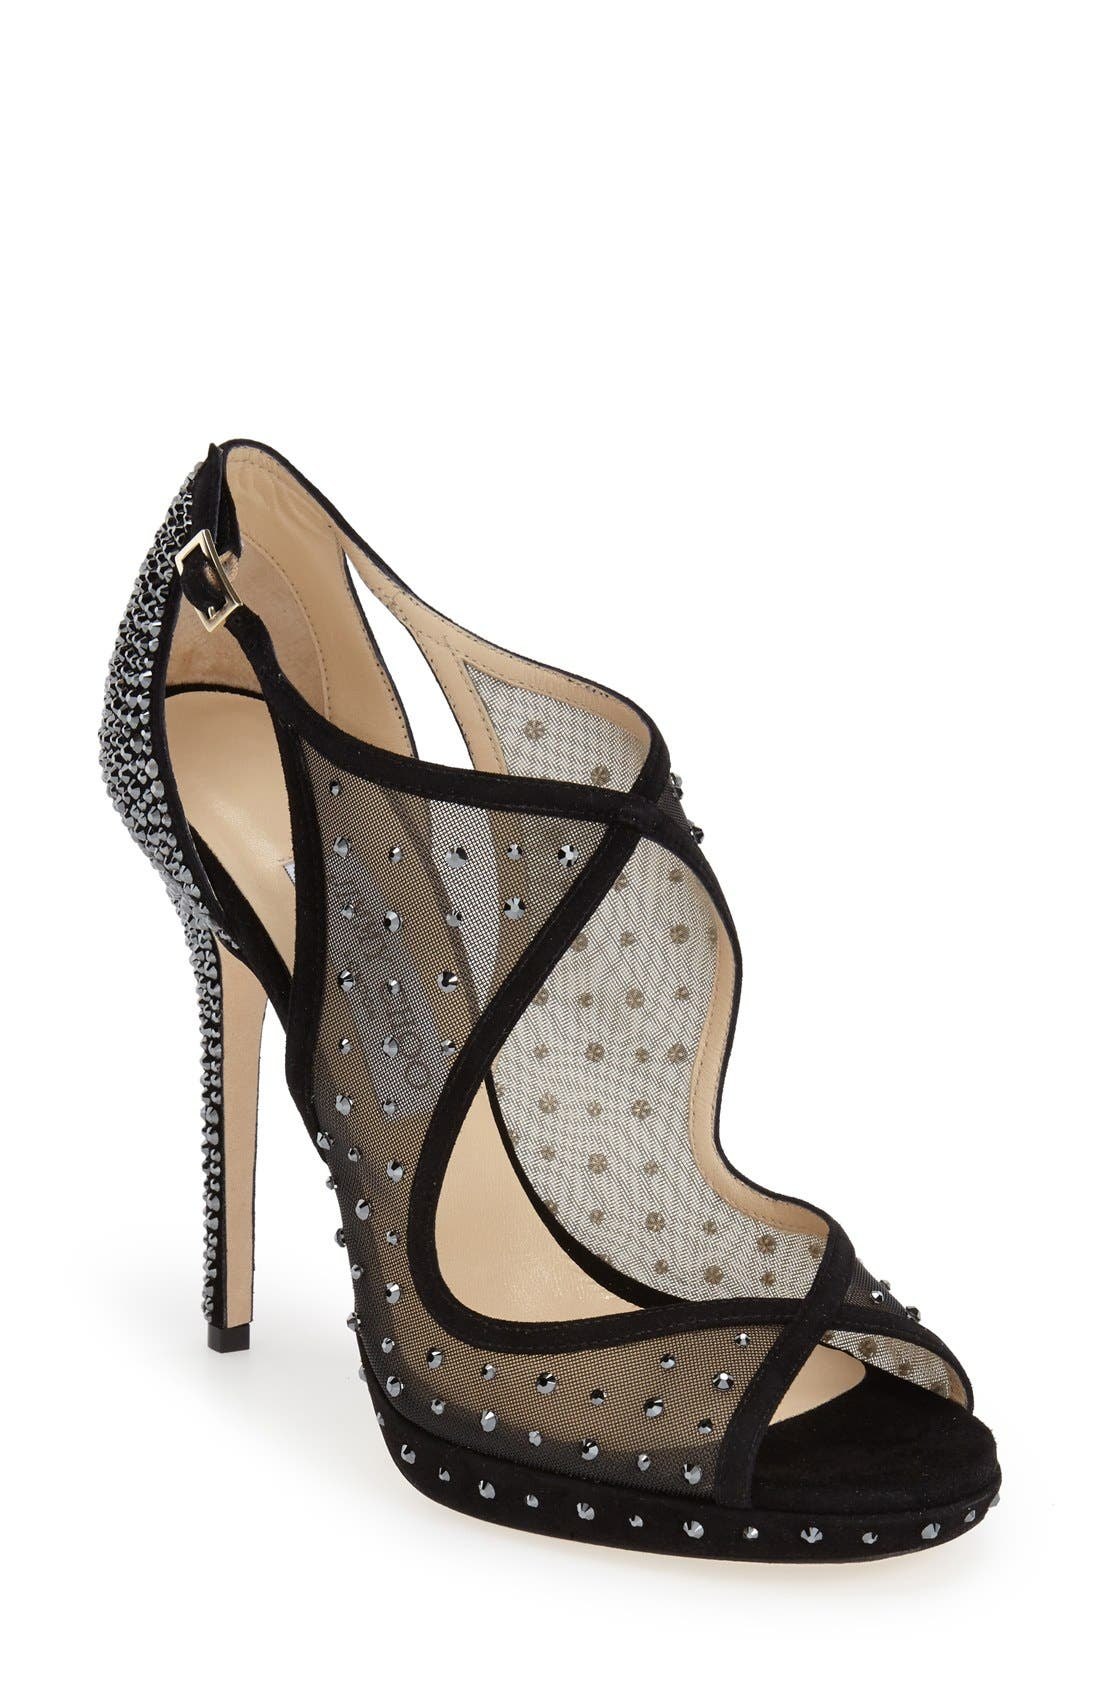 Alternate Image 1 Selected - Jimmy Choo 'Leondra' Sandal (Women)